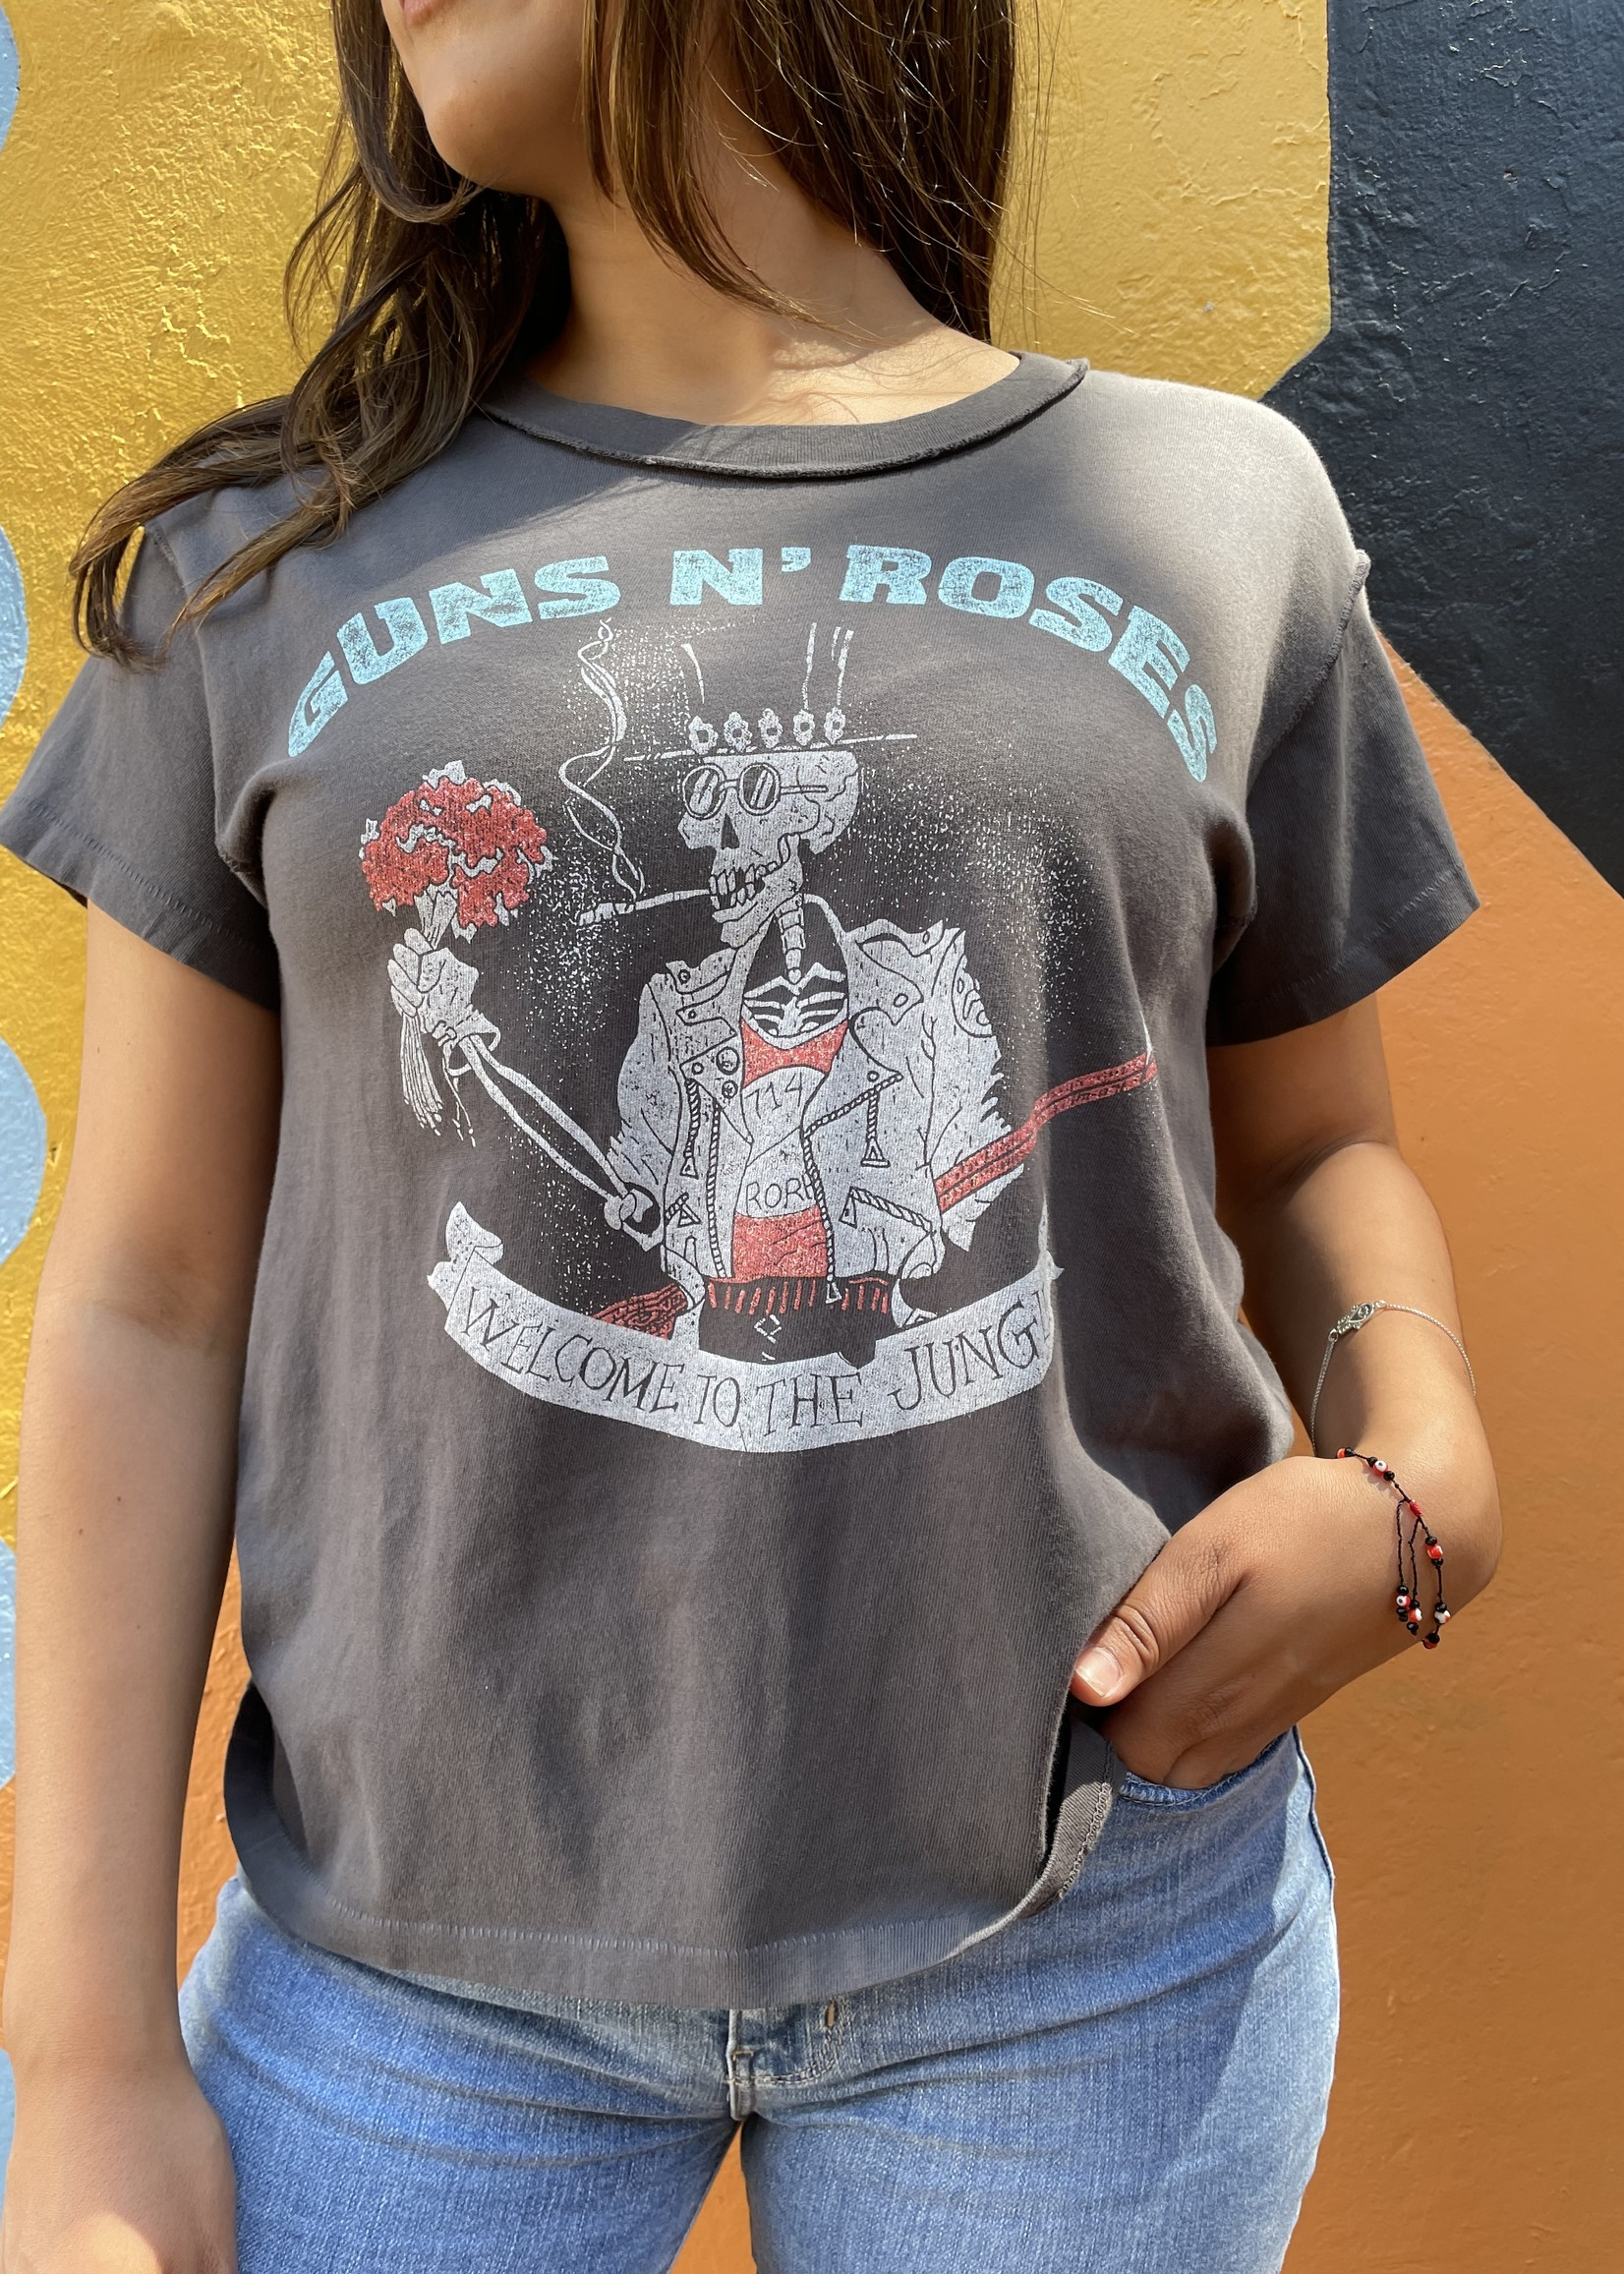 Guns N' Roses Welcome To The Jungle Reverse Girlfriend Tee